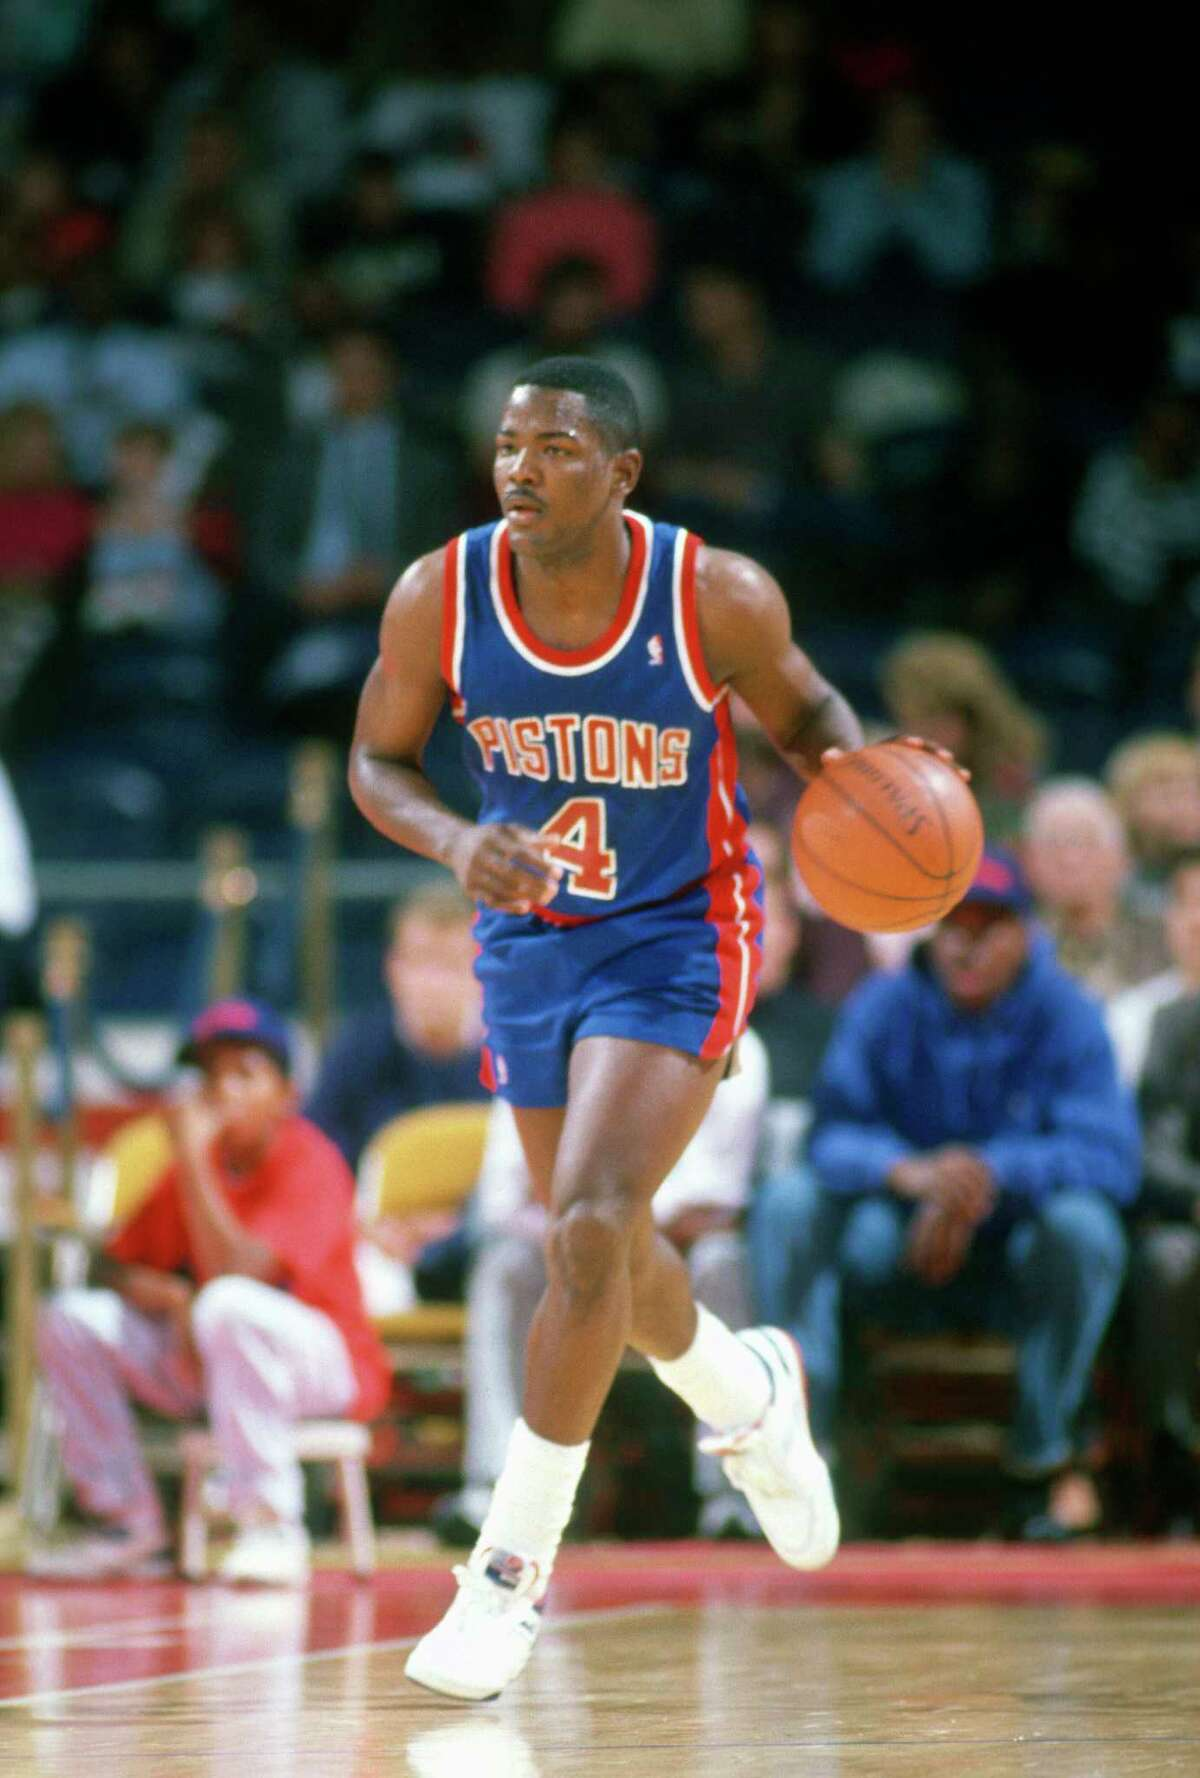 LANDOVER, MD - CIRCA 1990: Joe Dumars #4 of the Detroit Pistons dribbles the ball up court against the Washington Bullets during an NBA basketball game circa 1990 at The Capital Centre in Landover, Maryland. Dumars played for the Pistons from 1985-99. (Photo by Focus on Sport/Getty Images)